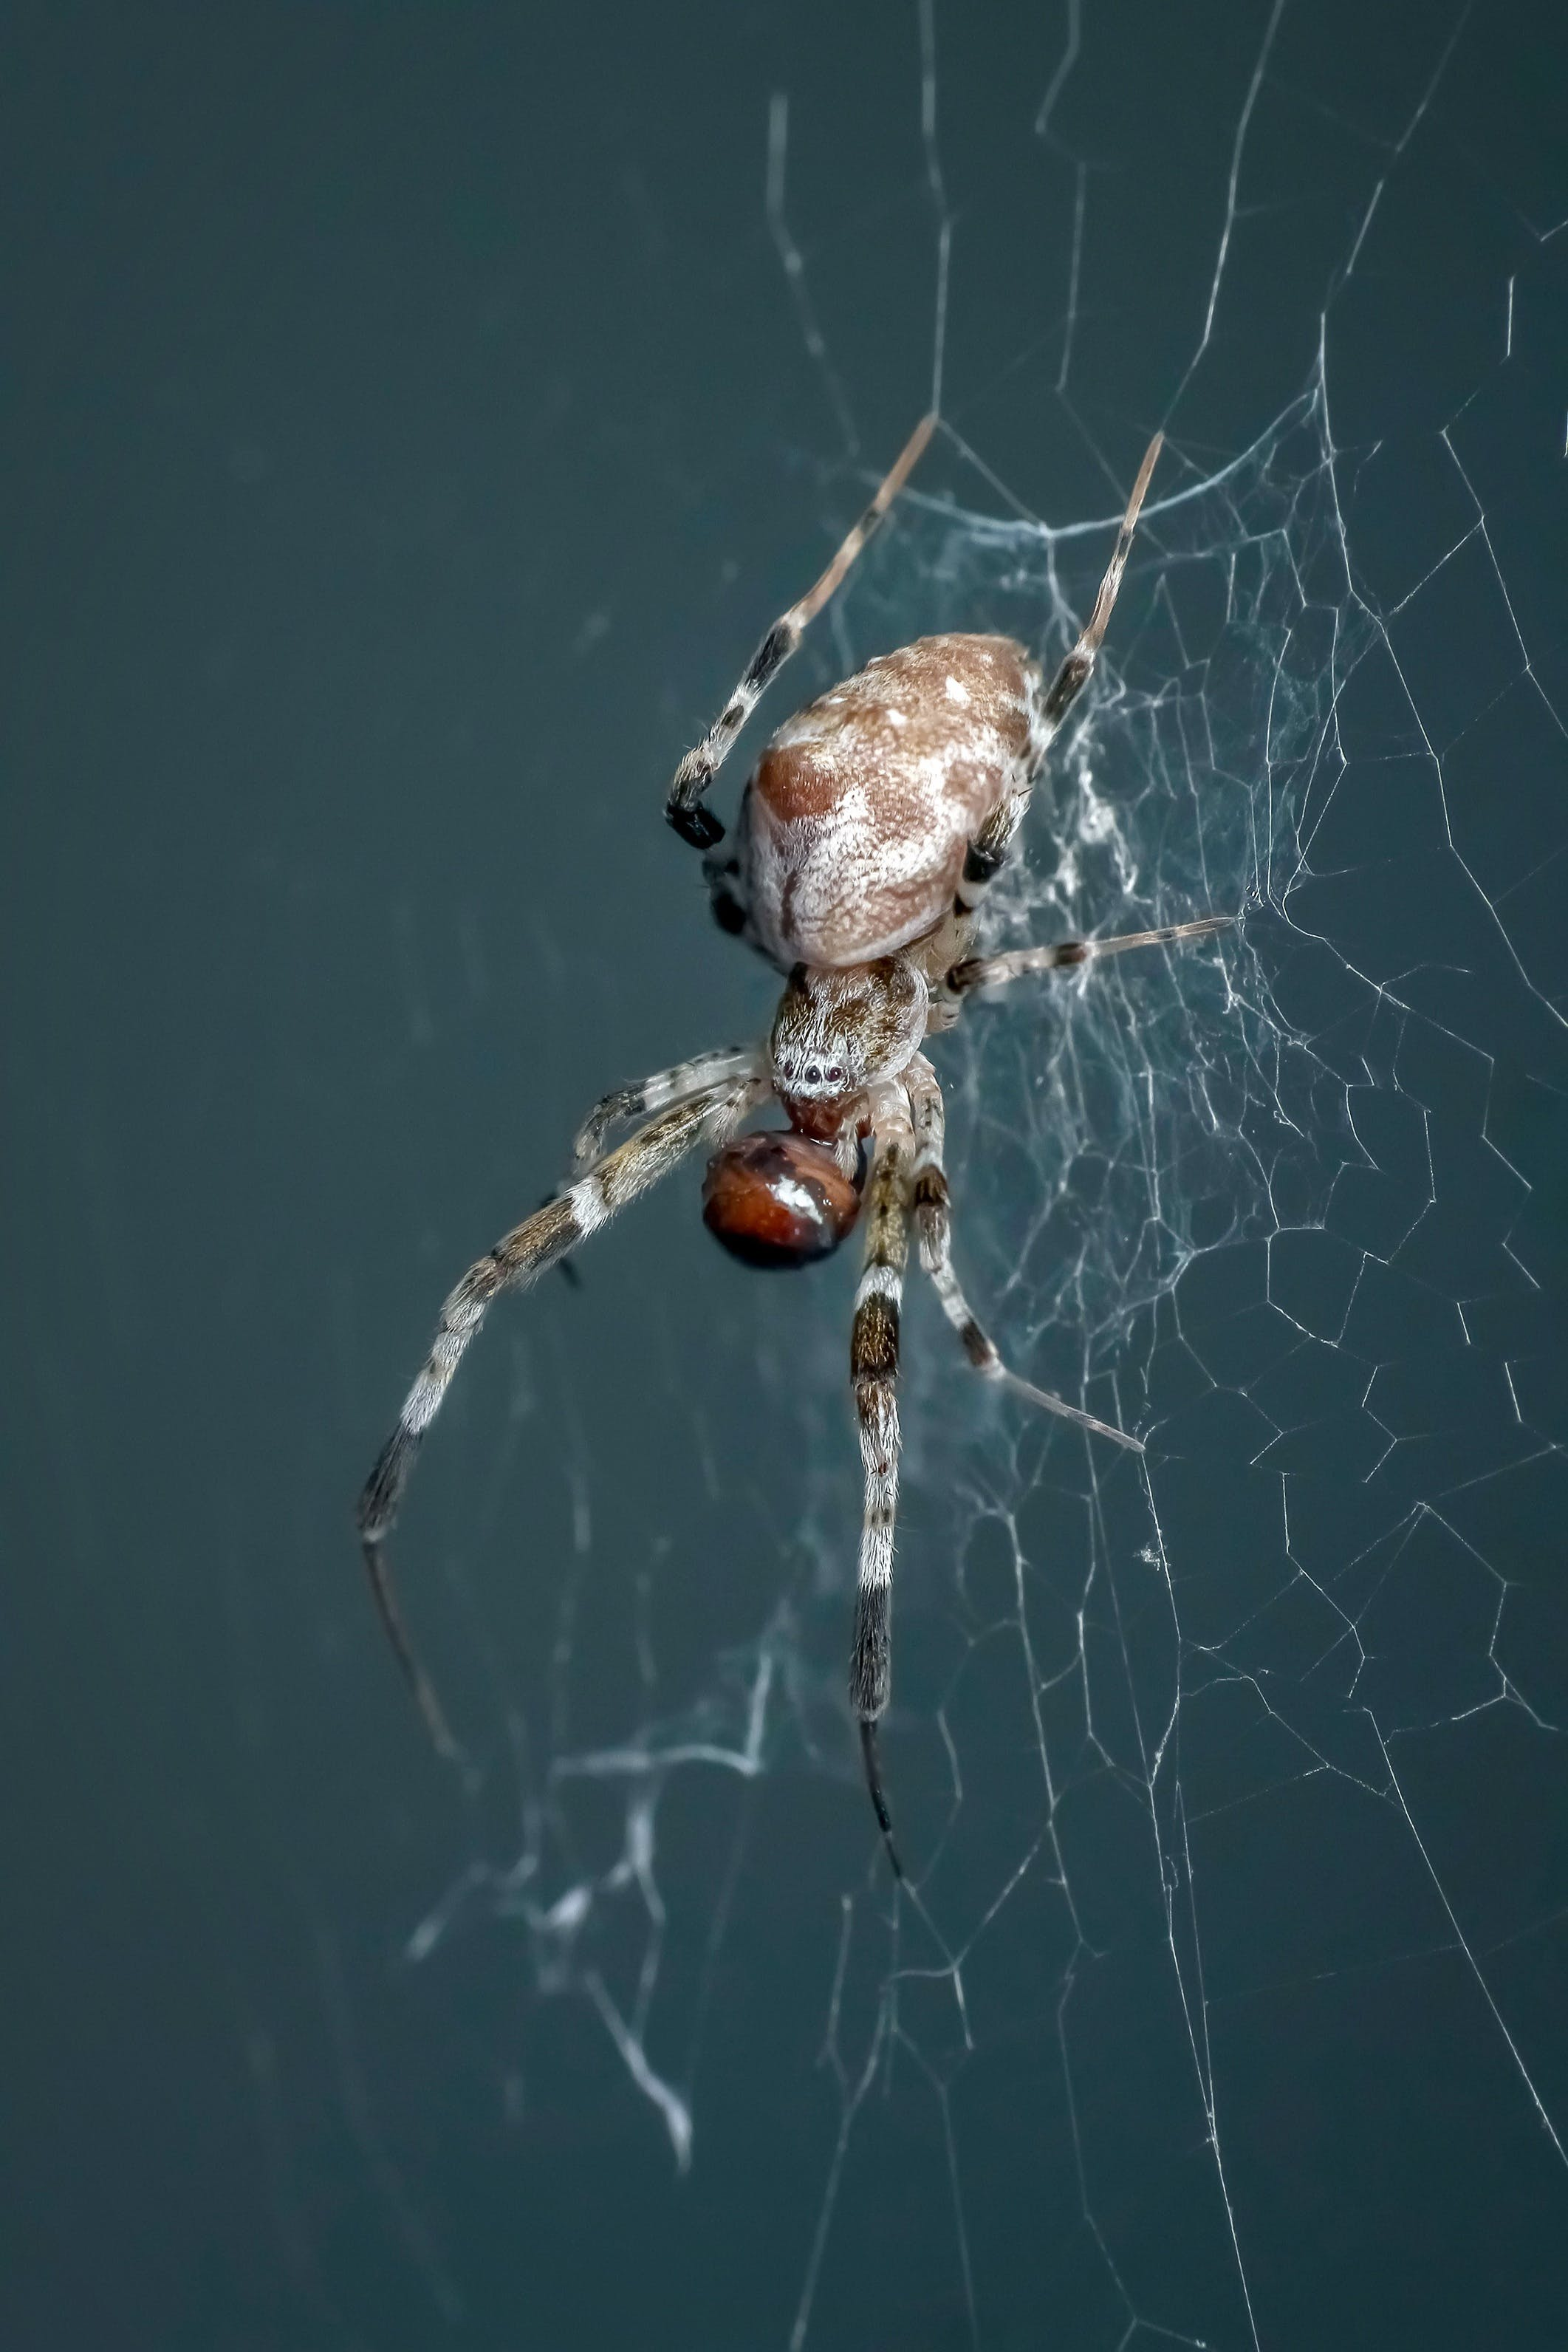 Free stock photo of animal, insect, macro, spider